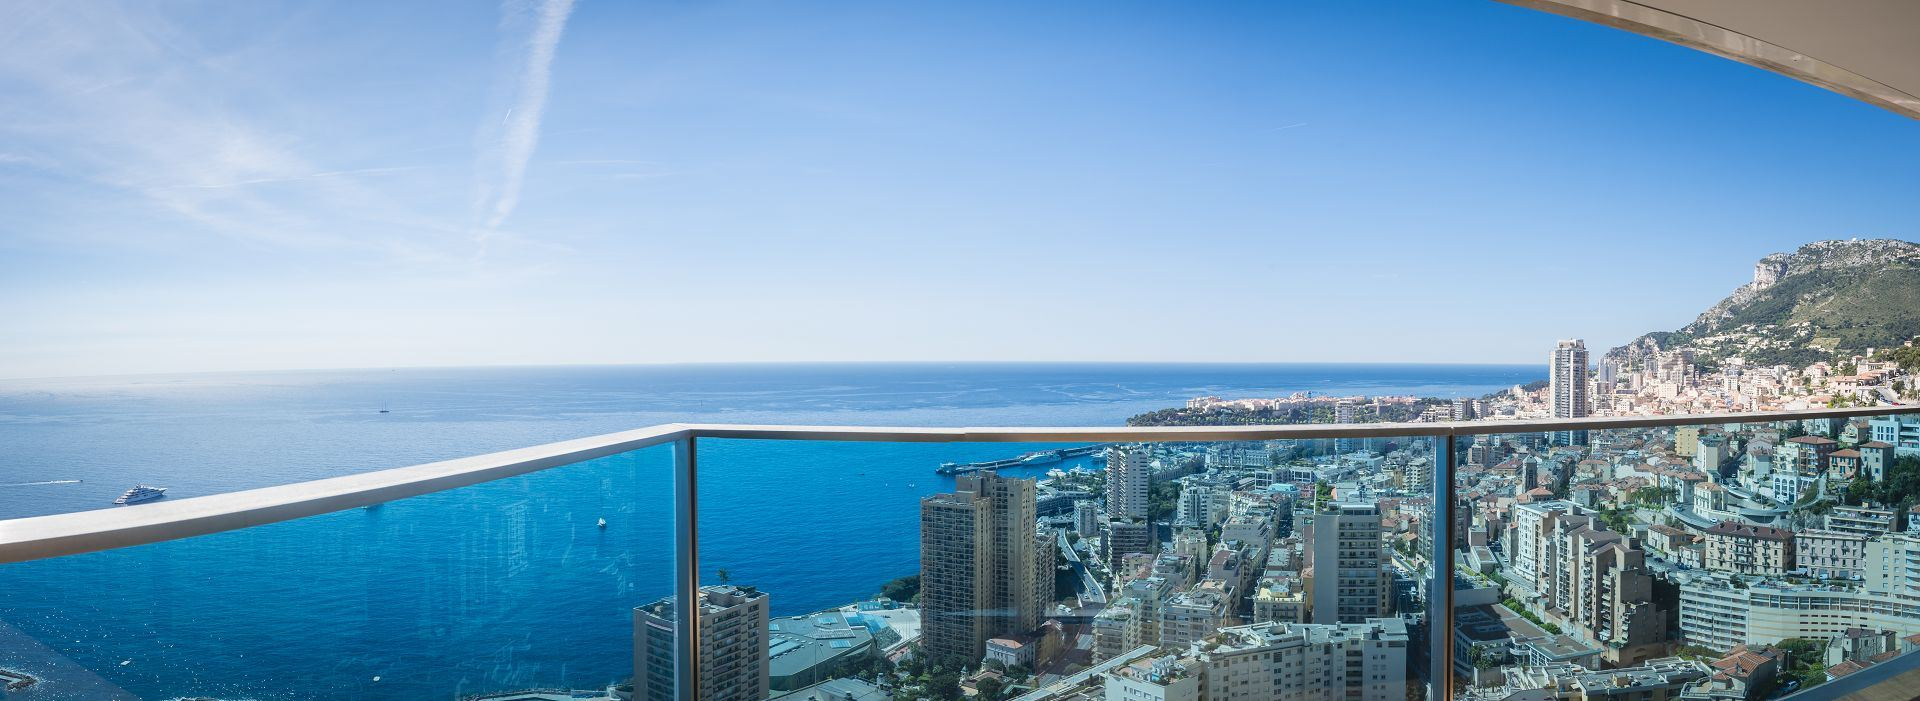 アパート のために 売買 アット Odeon Tower - Superb brand new apartment Tour Odéon 36 Avenue de l'Annonciade Other Monaco, Other Areas In Monaco, 98000 モナコ